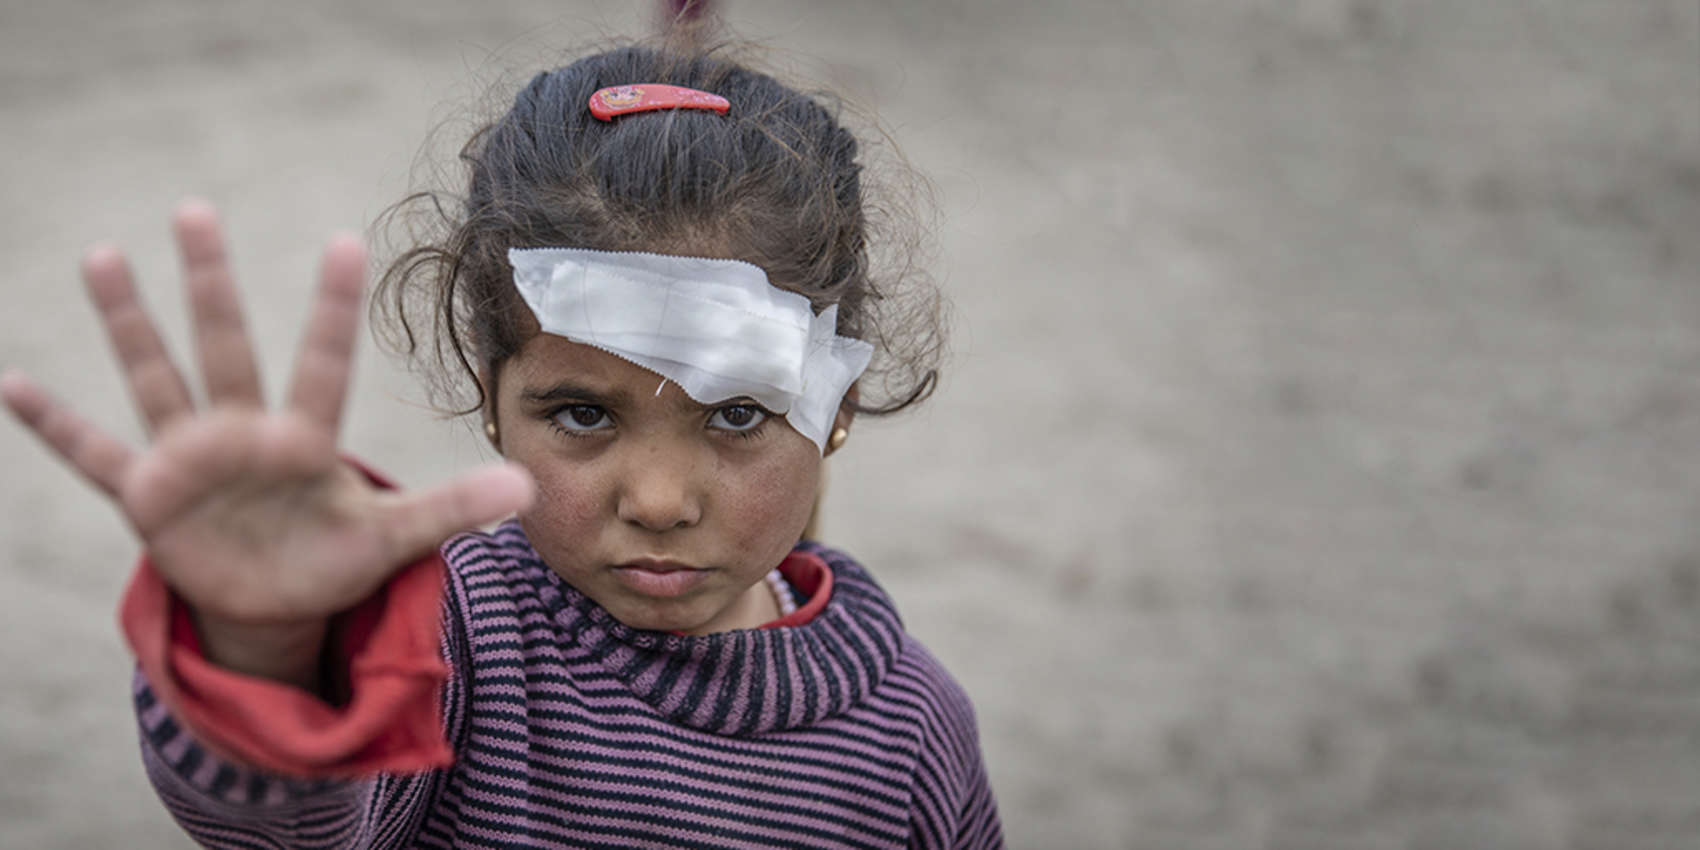 d6c78ba56296fd 1 IN 5 KIDS LIVES IN A CONFLICT ZONE. Today